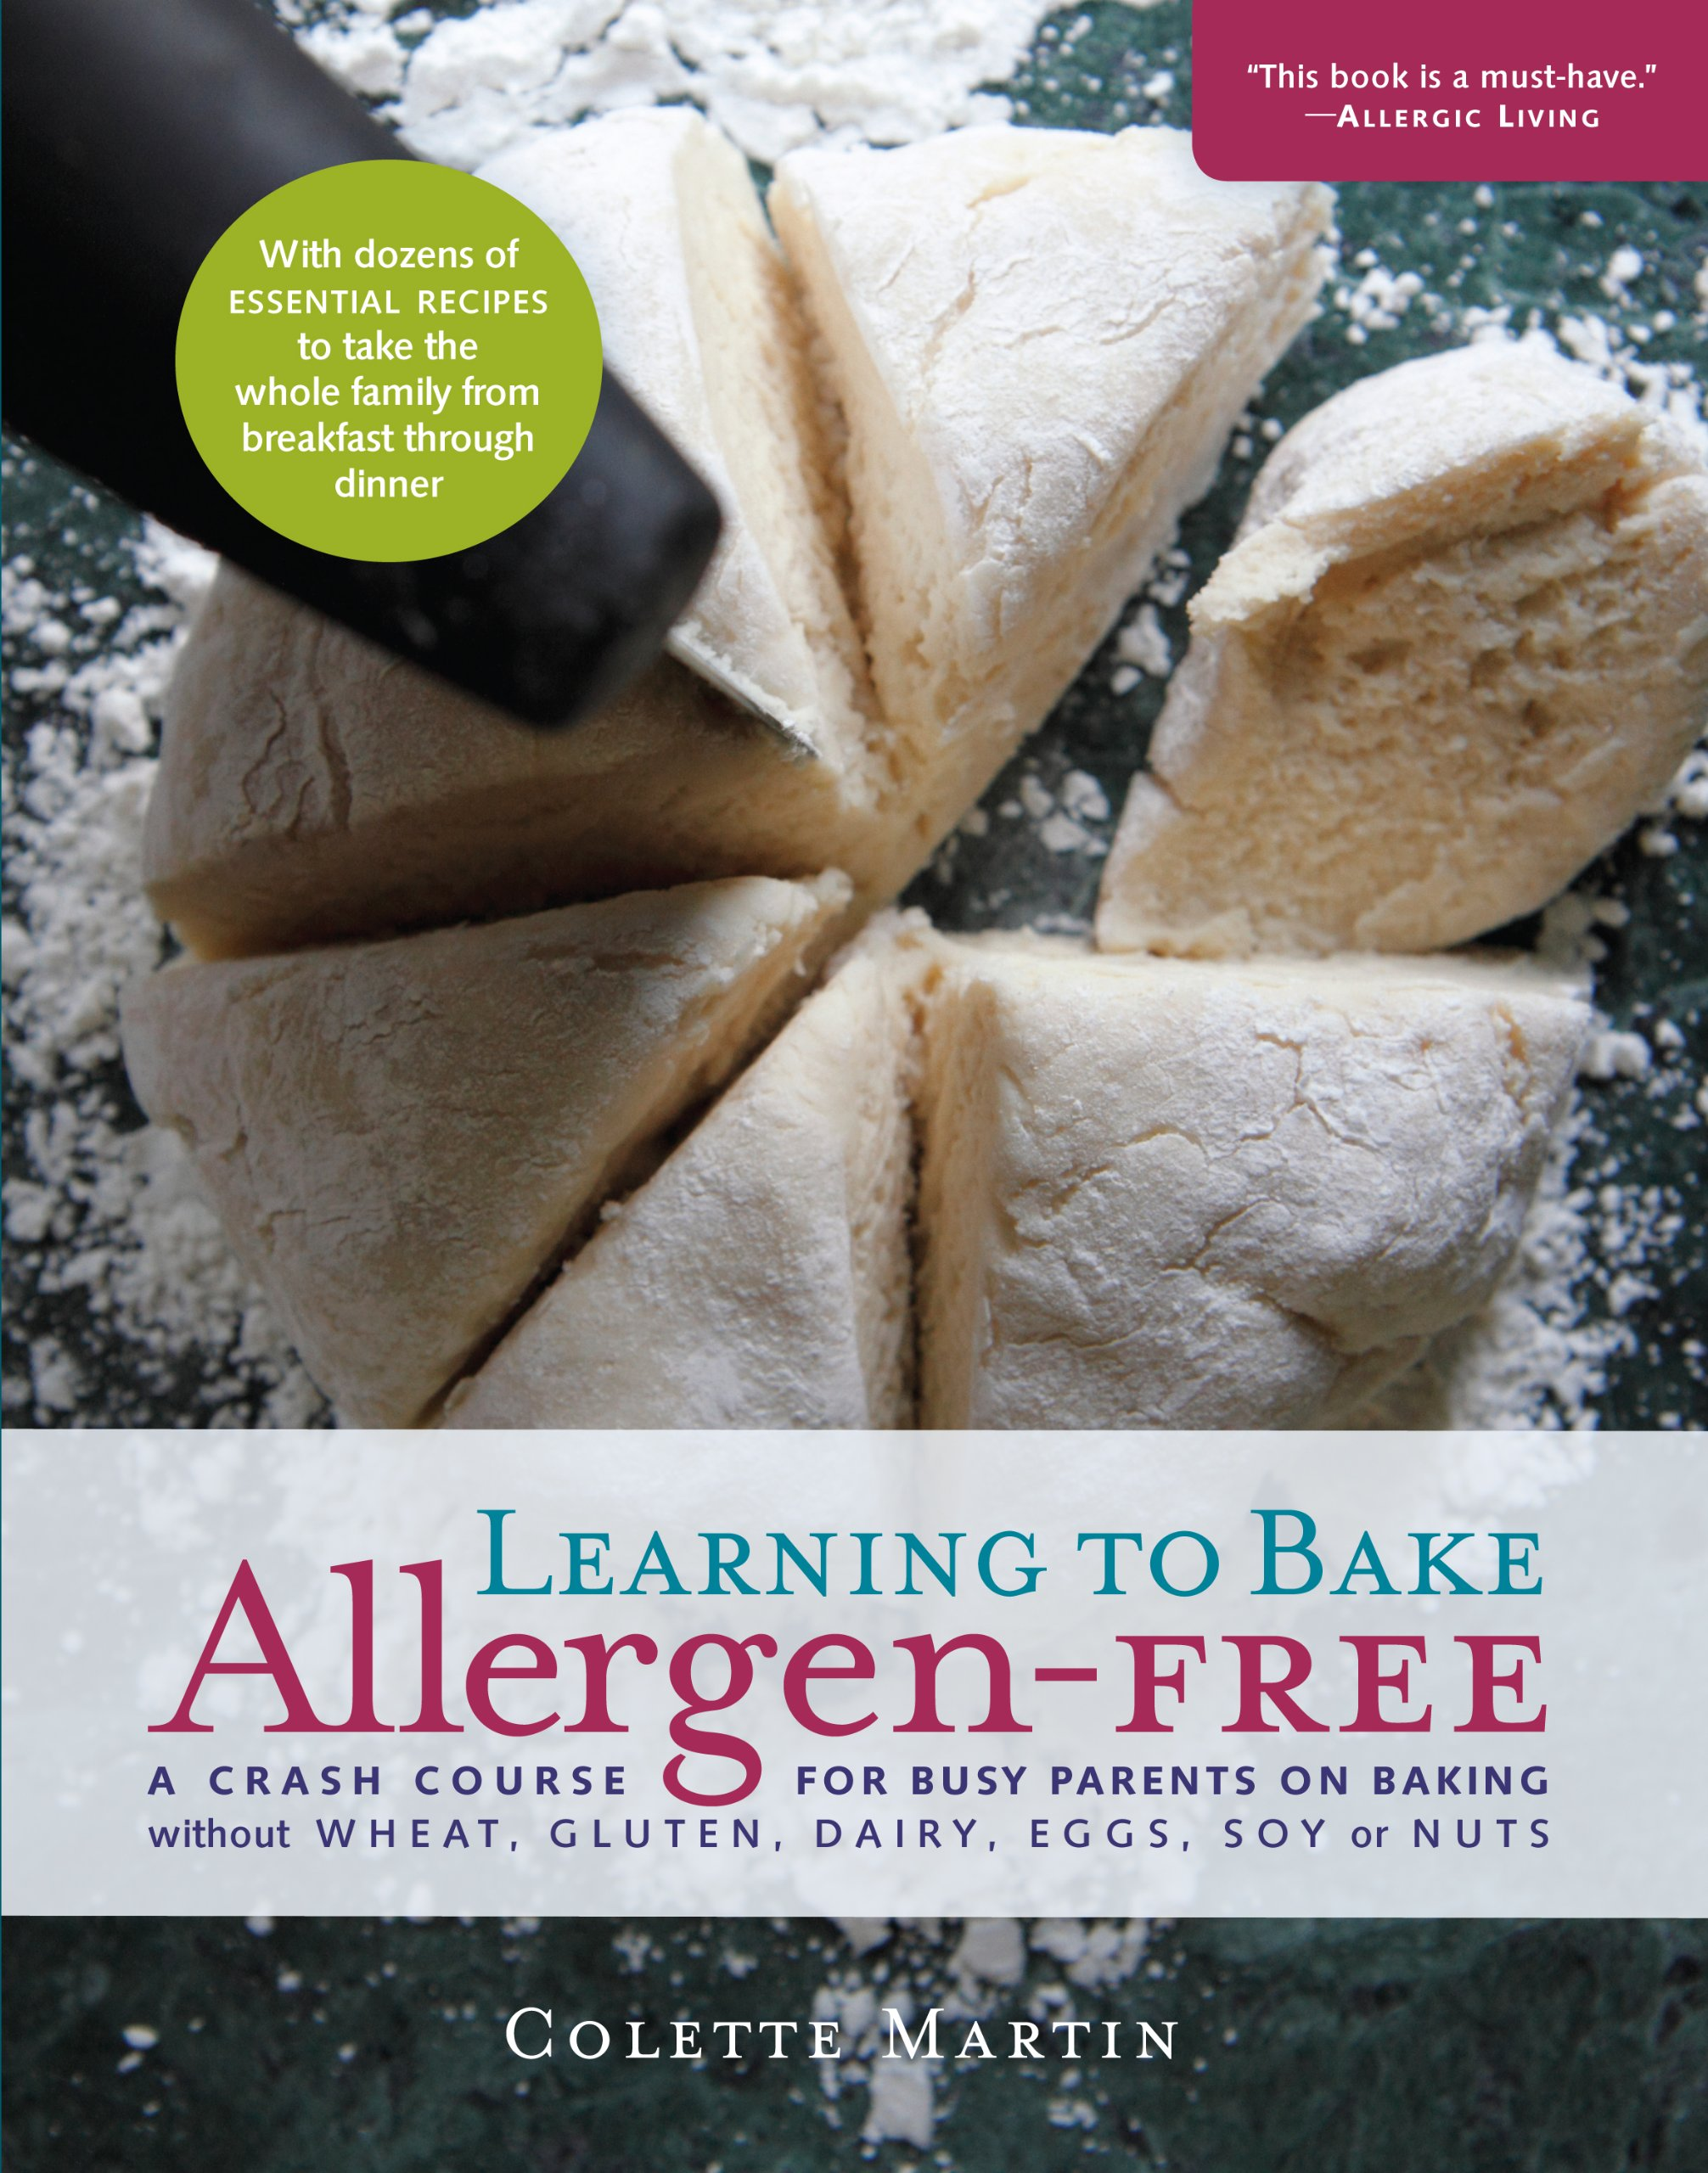 Learning to bake allergen free amazon colette martin learning to bake allergen free amazon colette martin 9781615190539 books forumfinder Choice Image